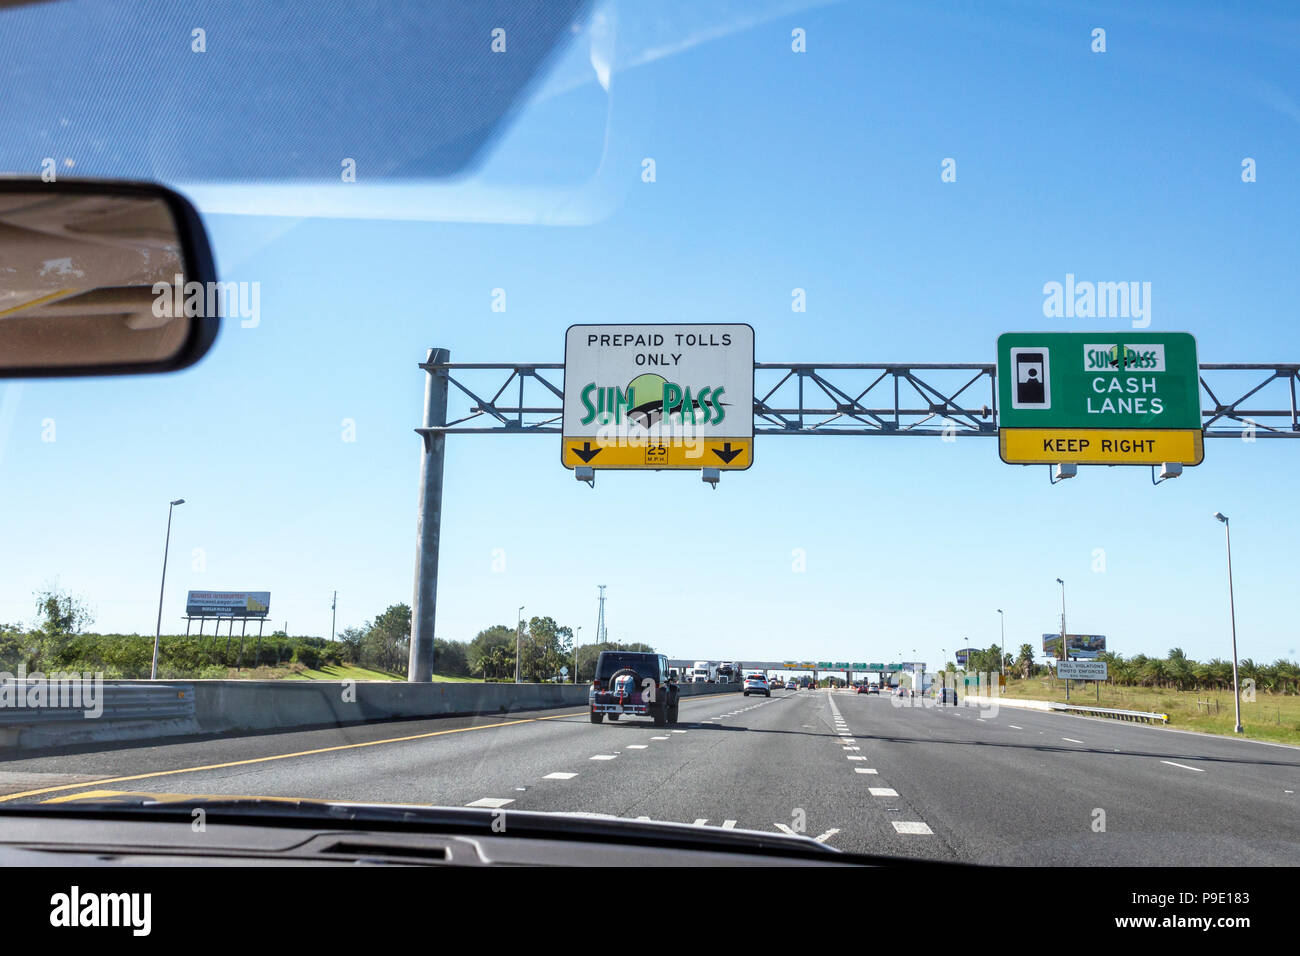 Florida Winter Park Florida Turnpike toll road plaza SunPass prepaid electronic toll tolls collection system highway traffic driving window windshield - Stock Image